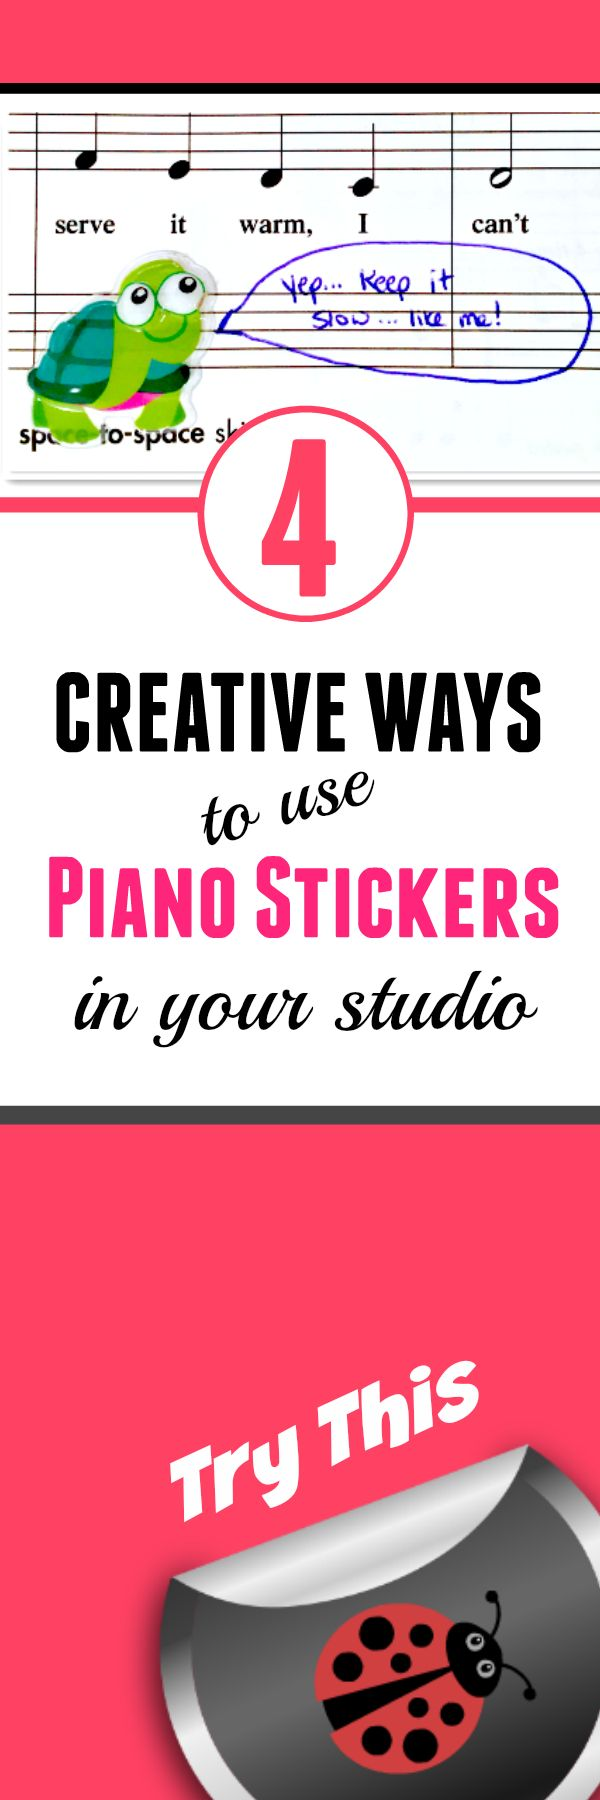 Everyone loves stickers... and piano teachers will love them even more when you realize how they can be used as a teaching tool... not only as a reward! #StickerMania #PianoTeacherTips #GetCreativeGetResults